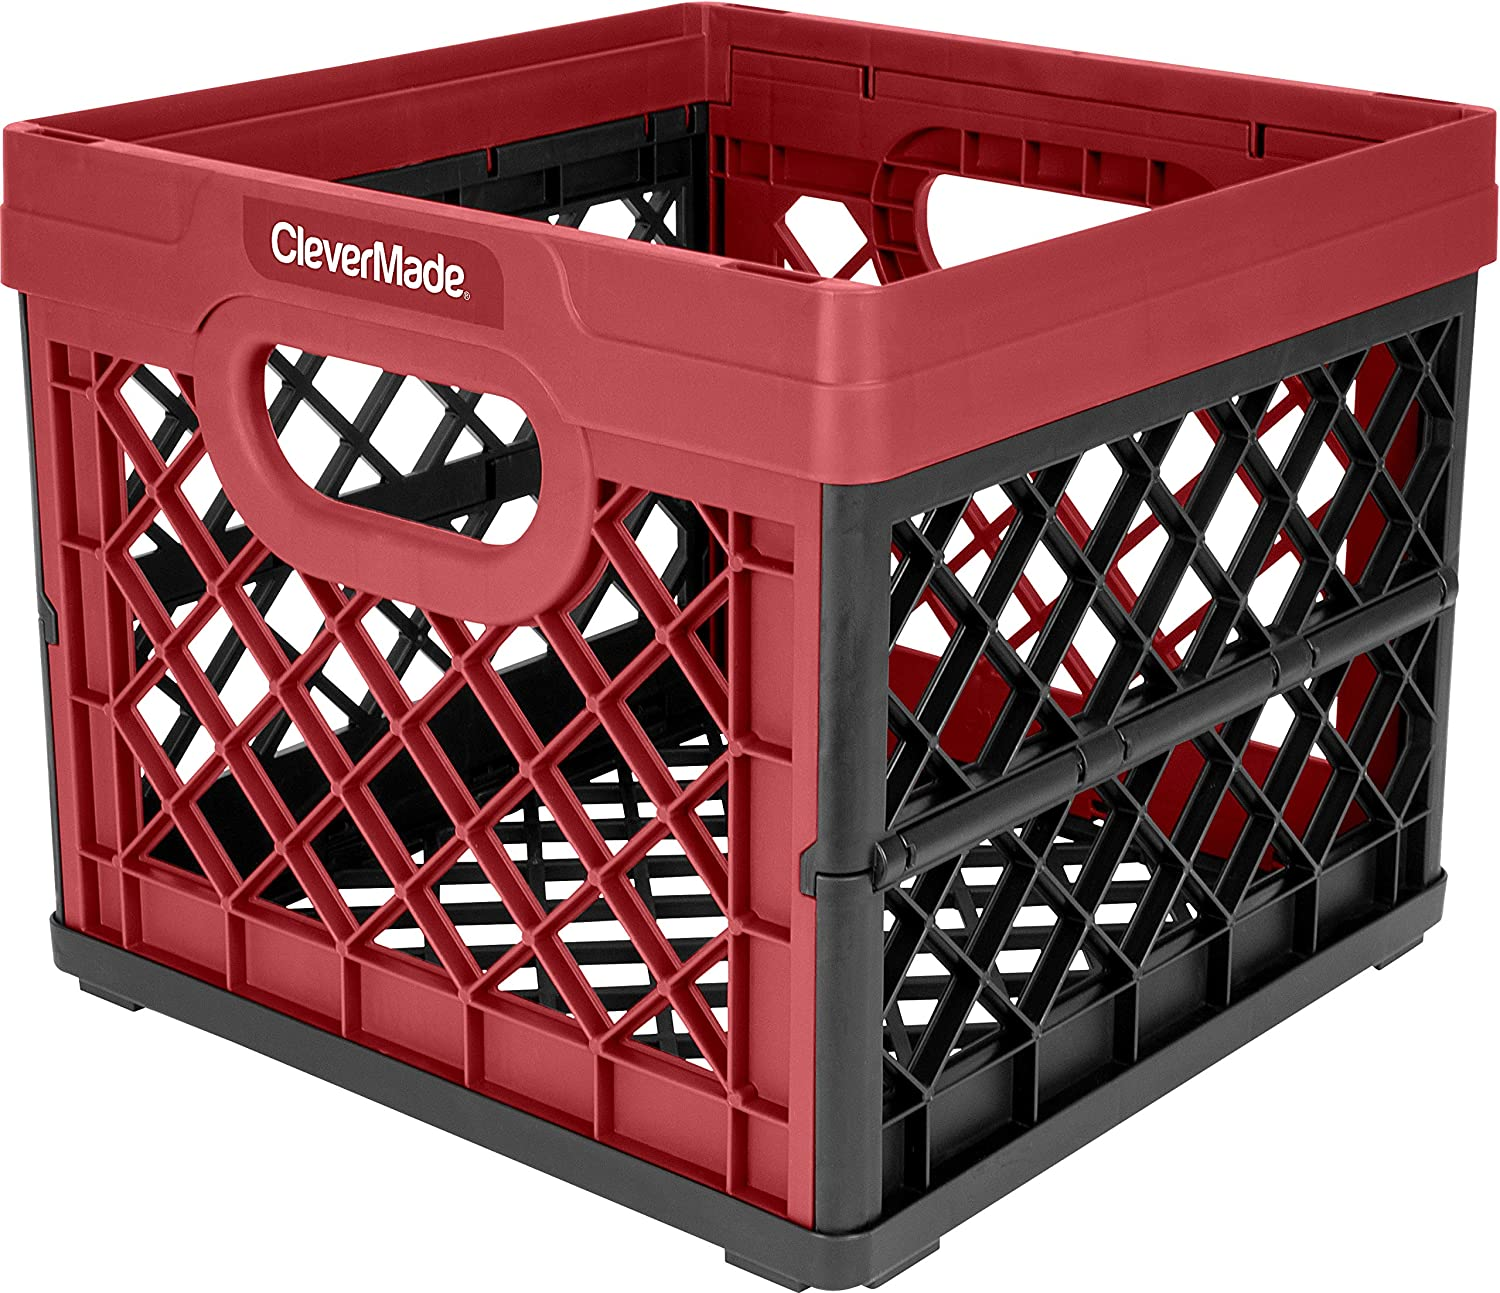 CleverMade 3-Pack Collapsible Milk Crate - Stackable Collapsible Storage Bin/Container / Utility Tote, 25 Liters, Red (3 pk)